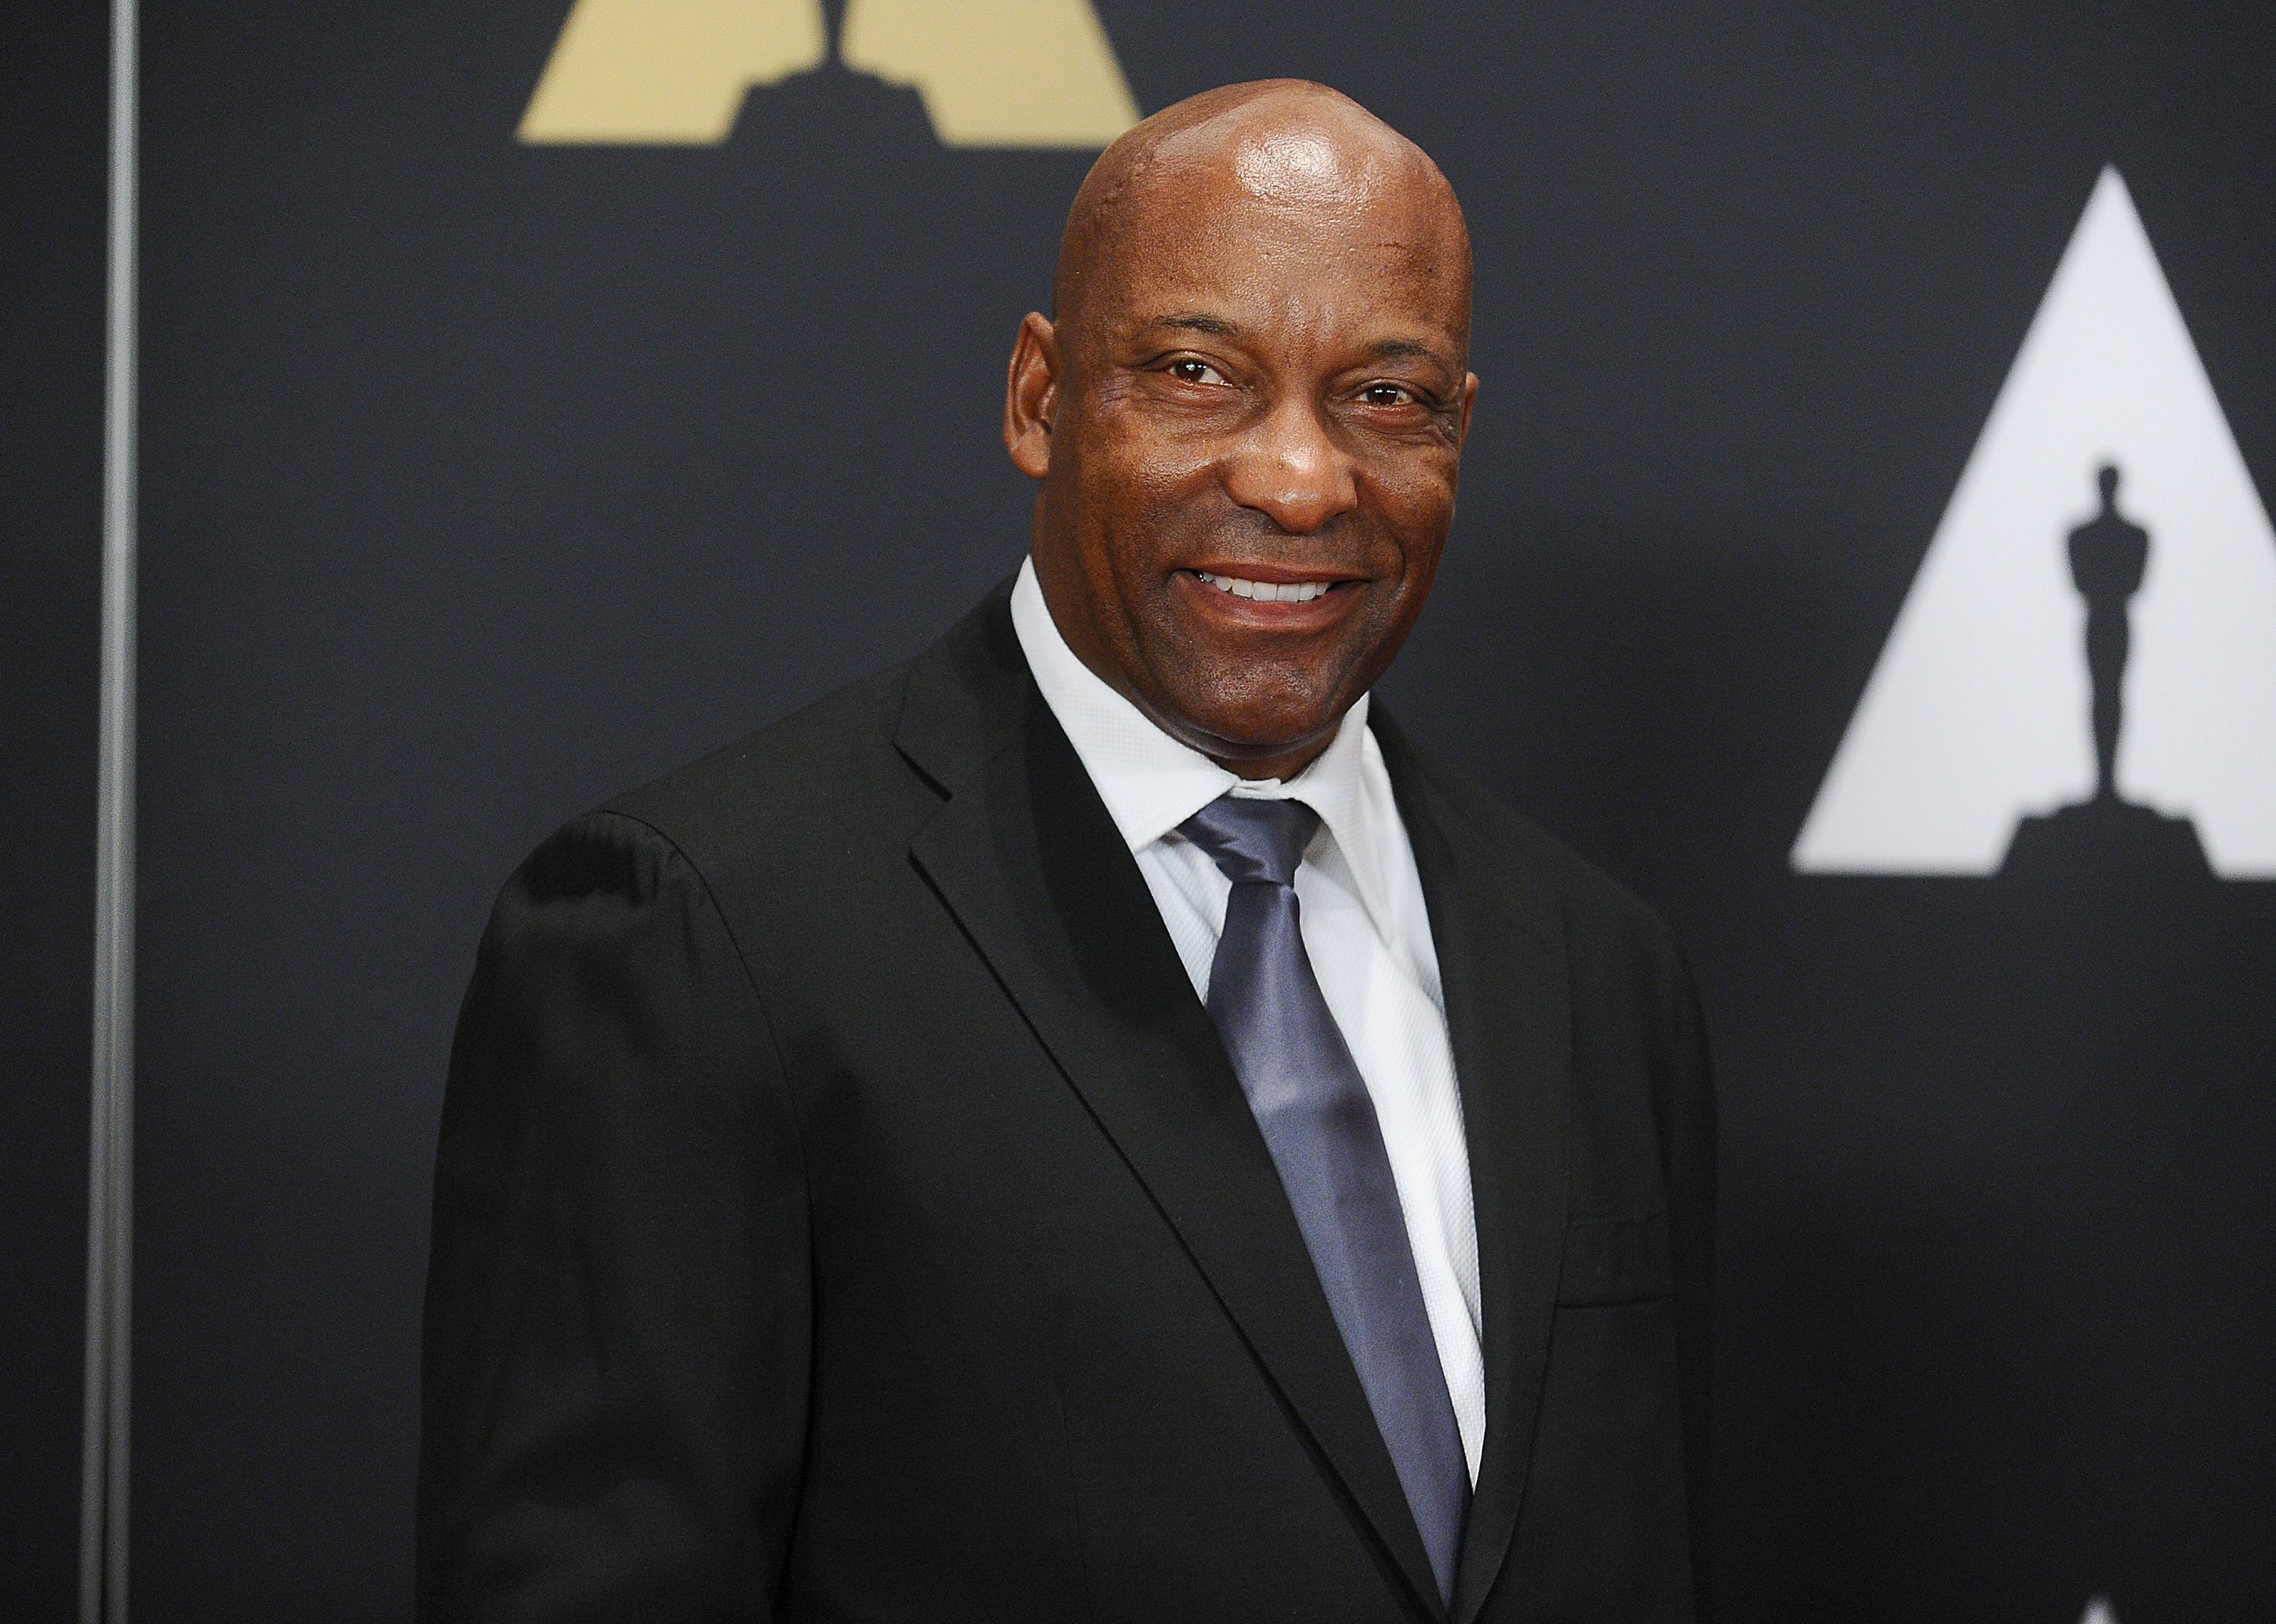 HOLLYWOOD, CA - NOVEMBER 14:  Director John Singleton attends the 7th annual Governors Awards at The Ray Dolby Ballroom at Hollywood & Highland Center on November 14, 2015 in Hollywood, California.  (Photo by Jason LaVeris/FilmMagic)